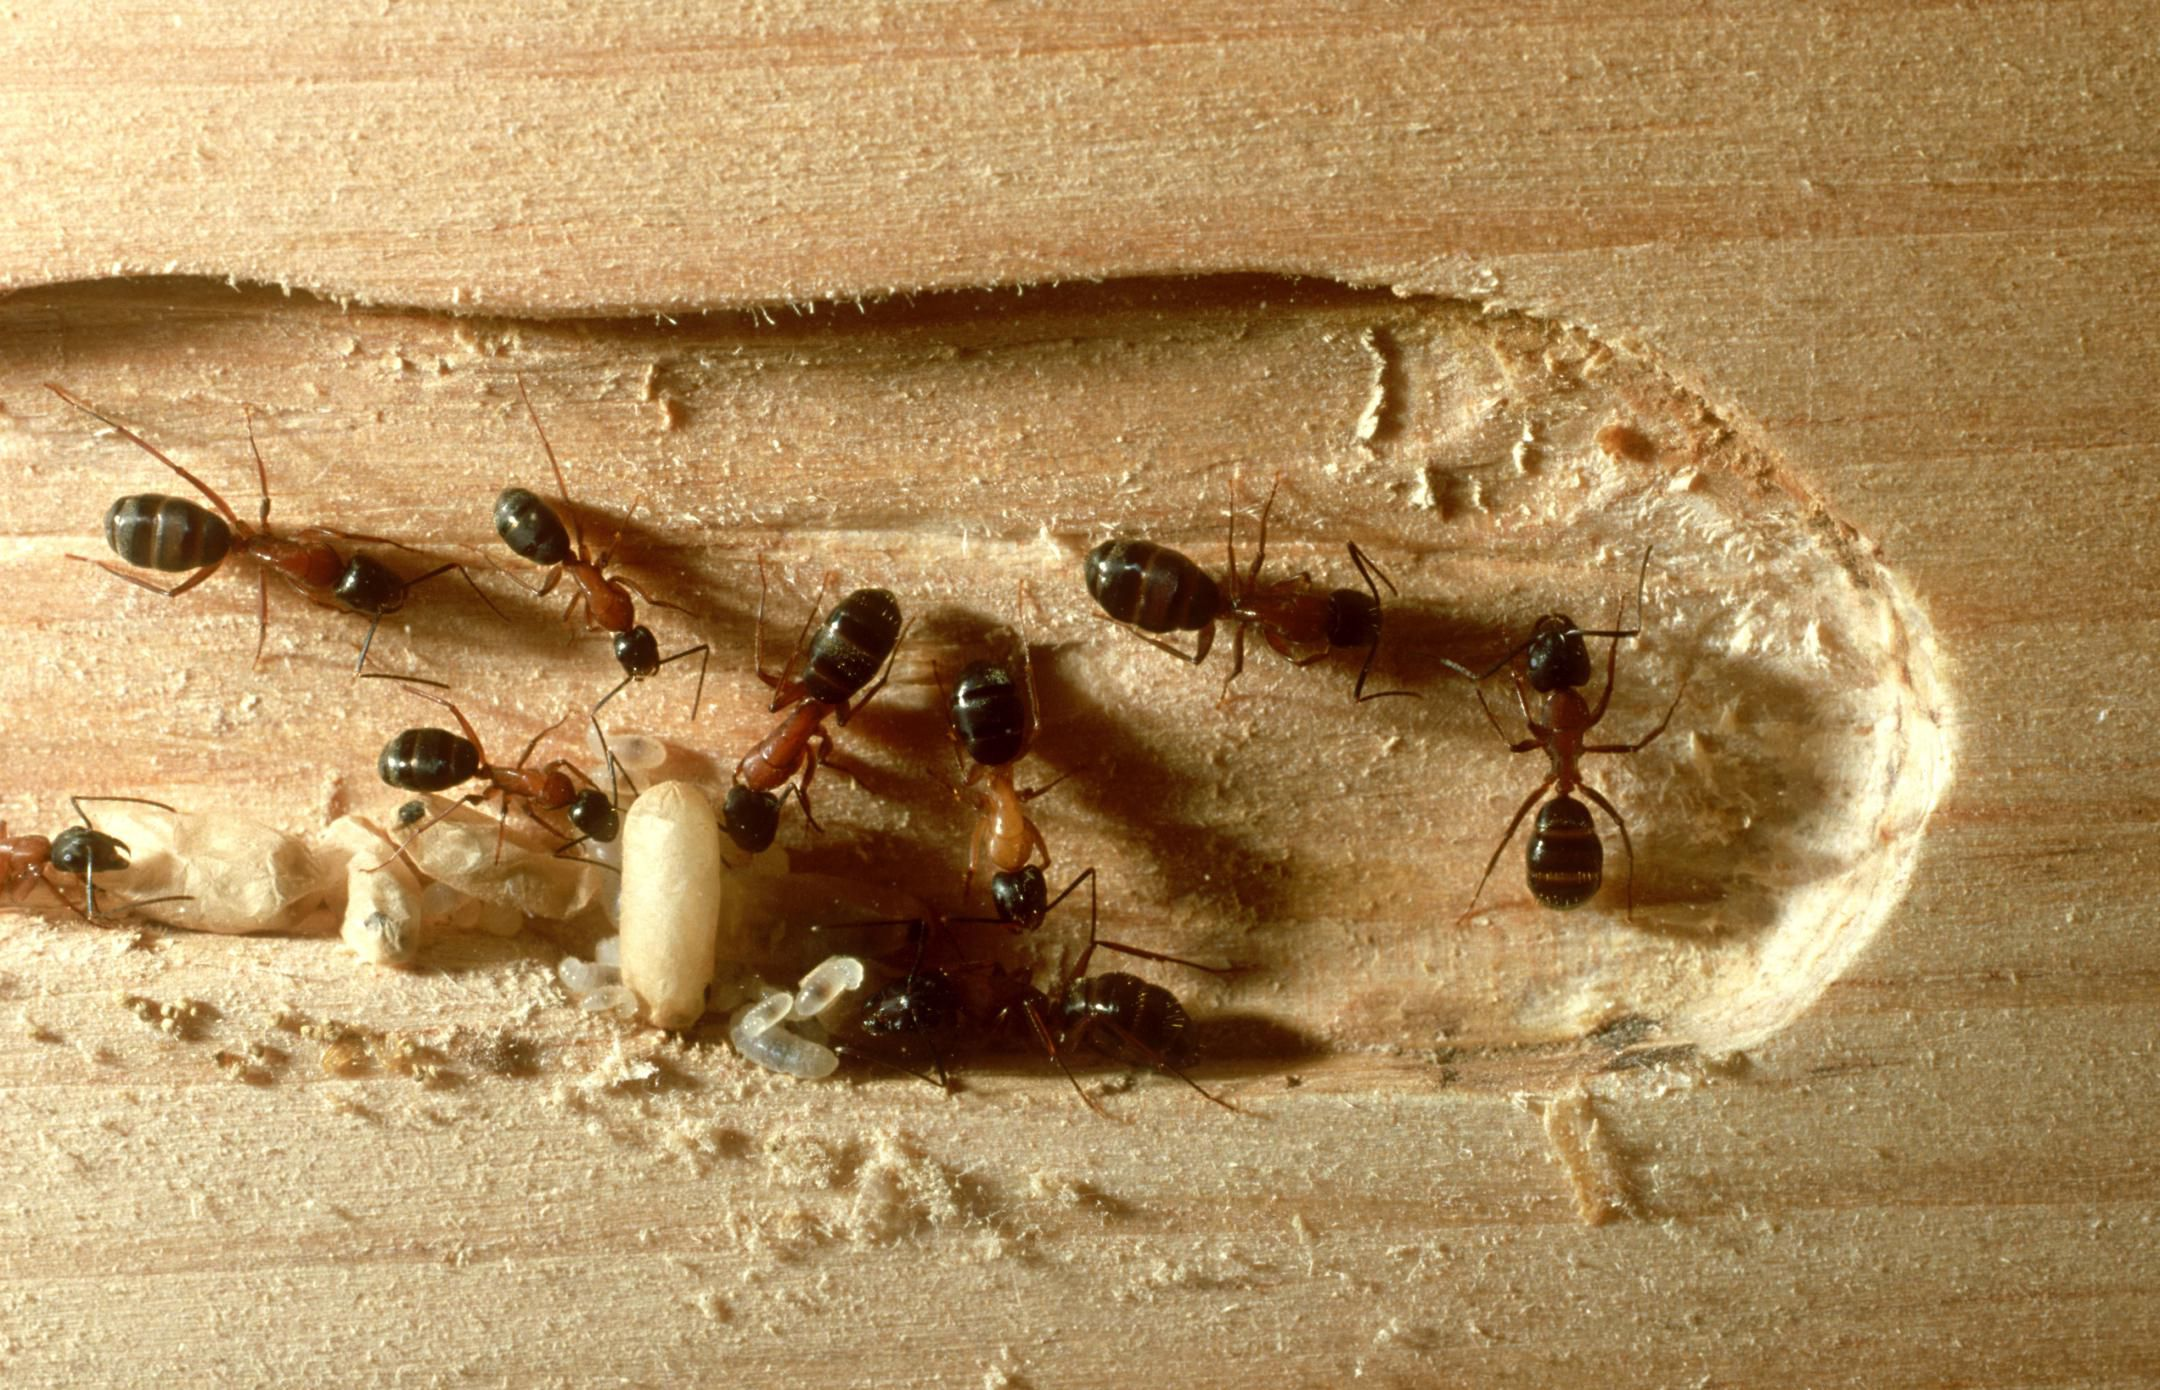 How to Control the Wood Destroying Carpenter Ant  Pest Control Basics. What to Do About Flying Ants in Your Home